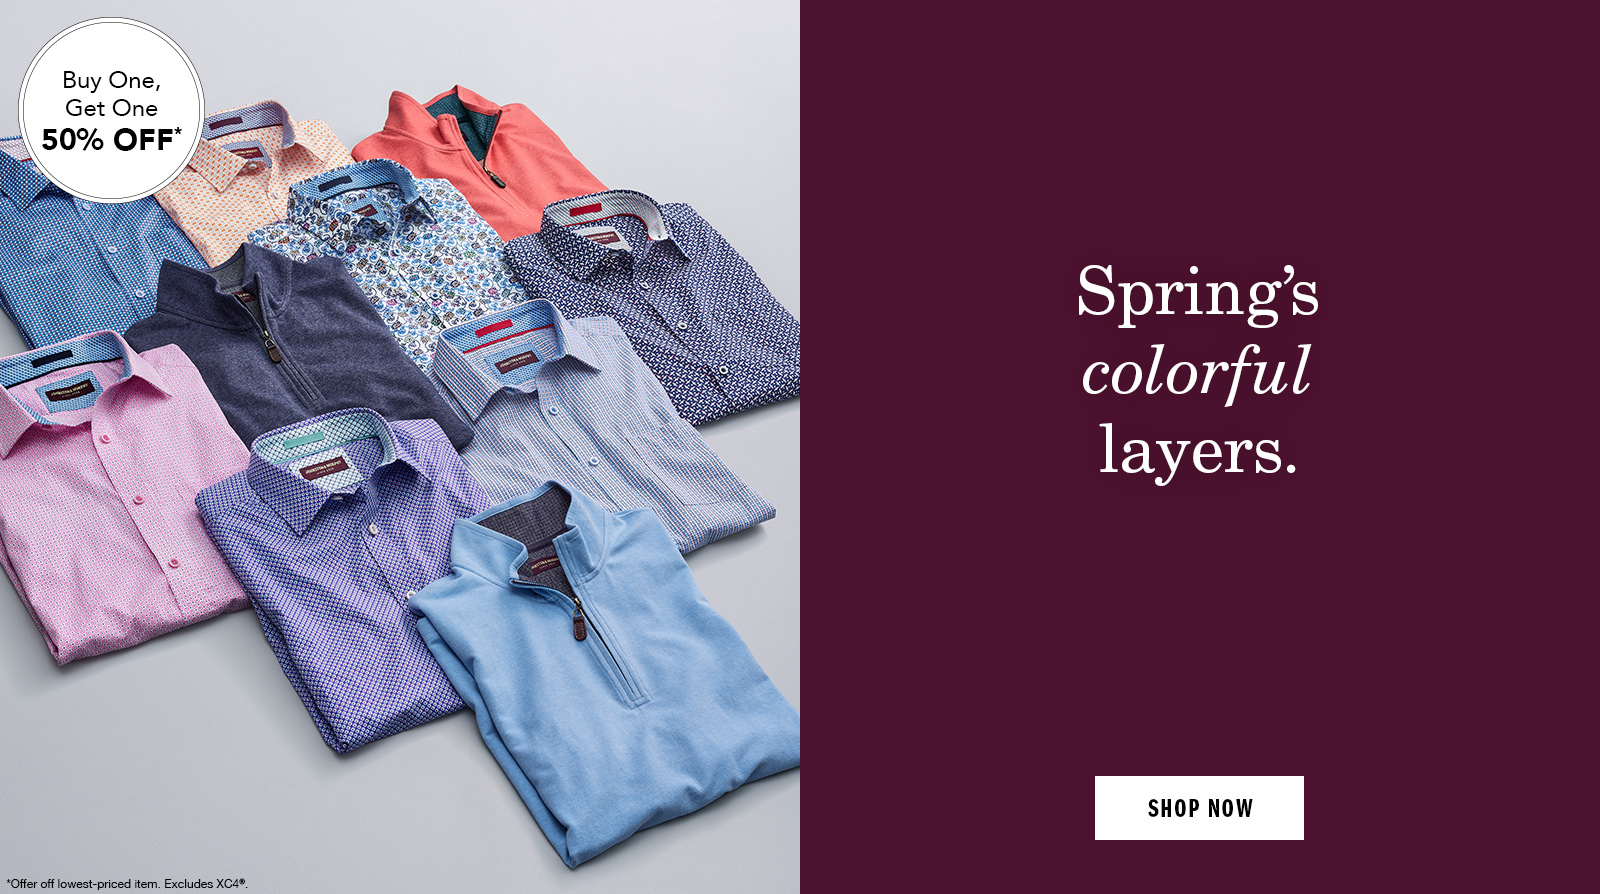 Spring's colorful layers - Shop Men's Shirts and Sweaters